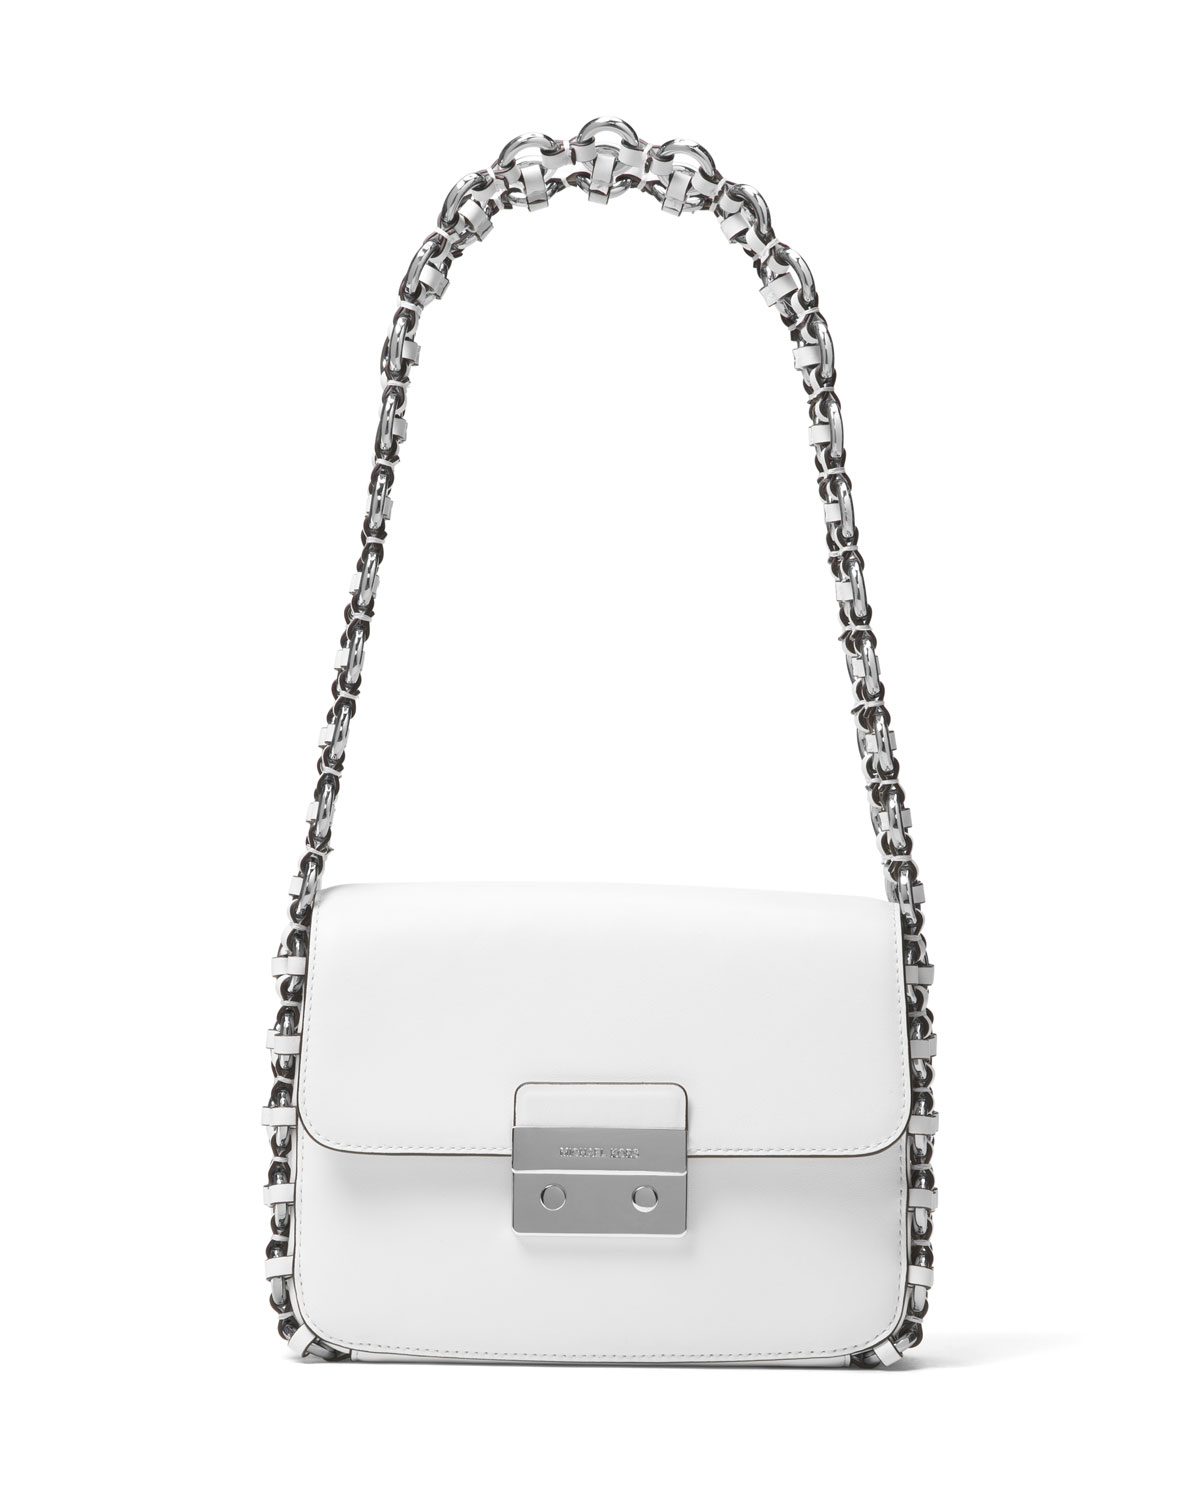 Piper Large Flap Shoulder Bag